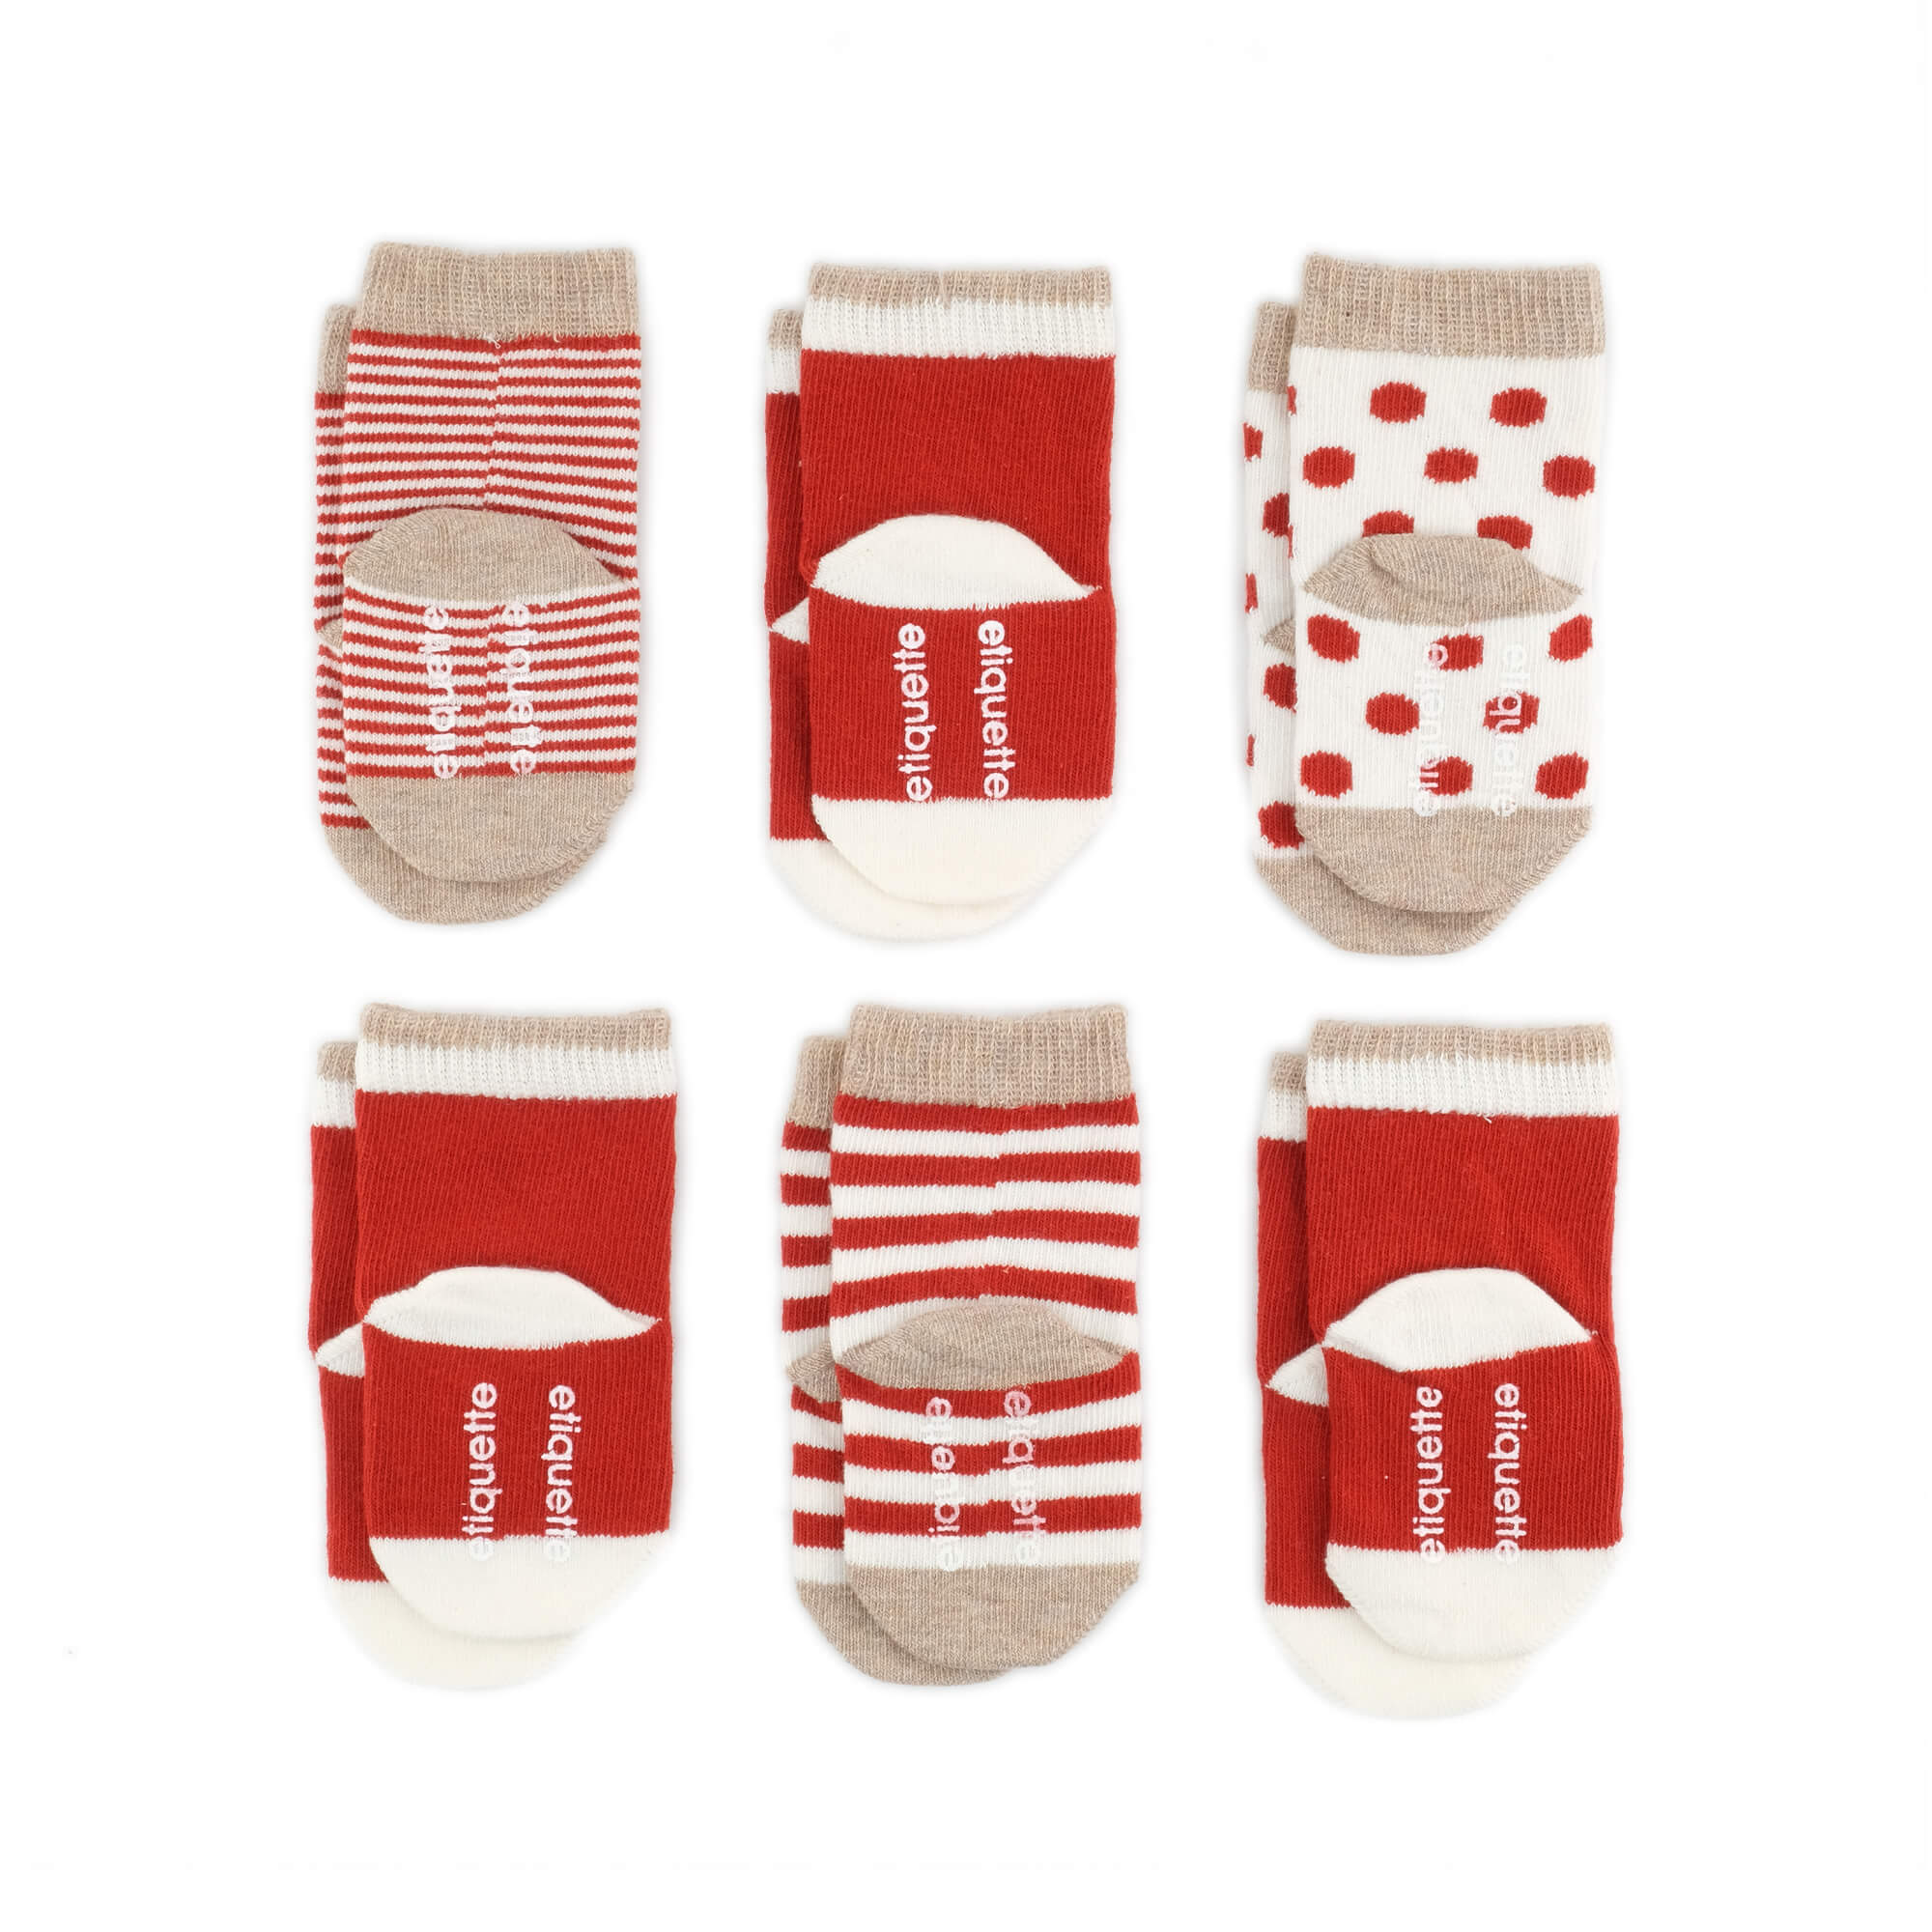 Baby Socks - Classic Earth Baby Socks Gift Box - Red⎪Etiquette Clothiers